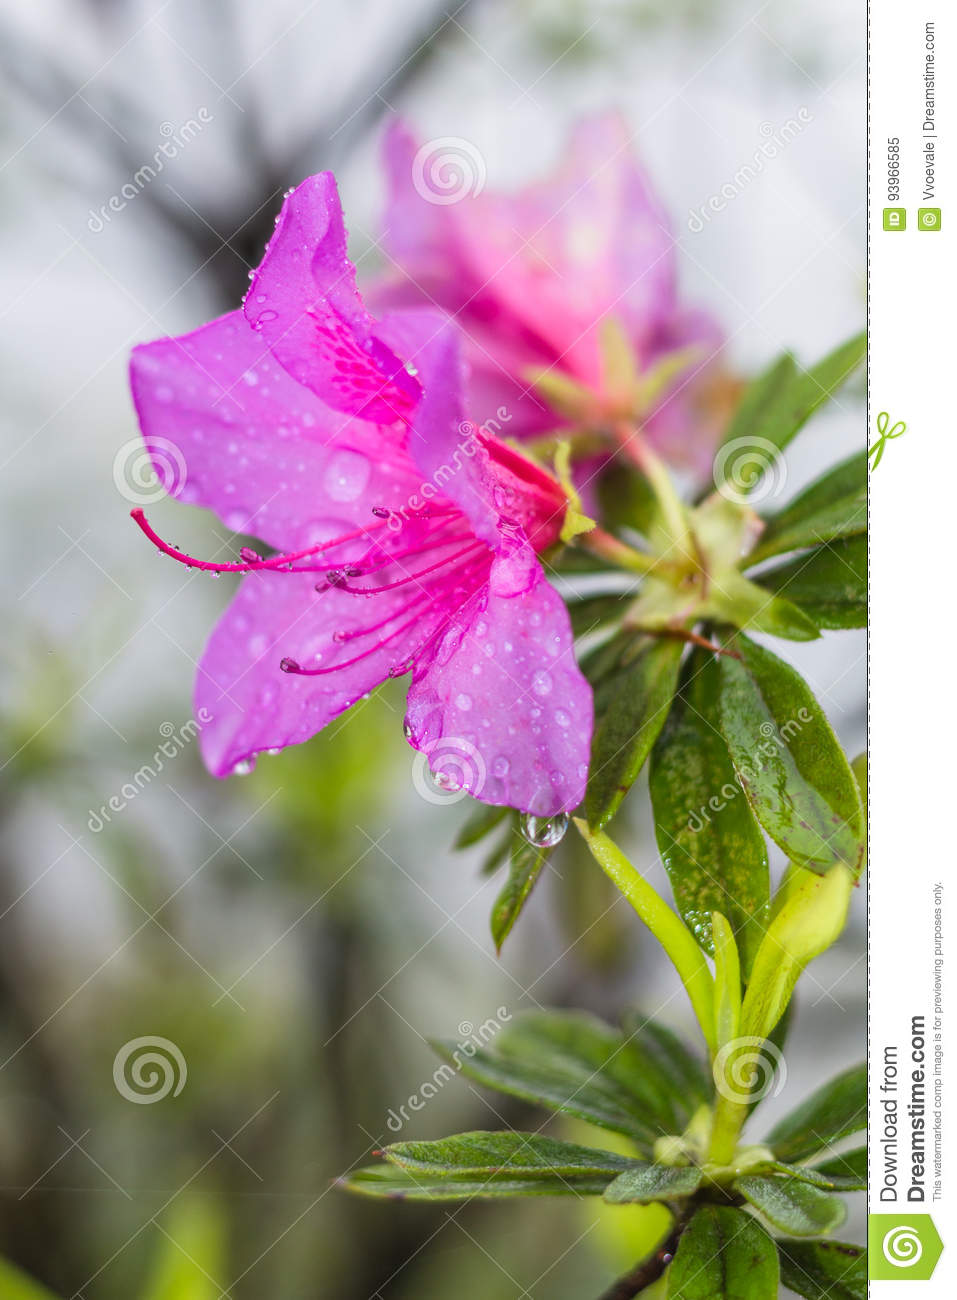 Pink lily flower in spring rain stock image image of raindrop pink lily flower in spring rain izmirmasajfo